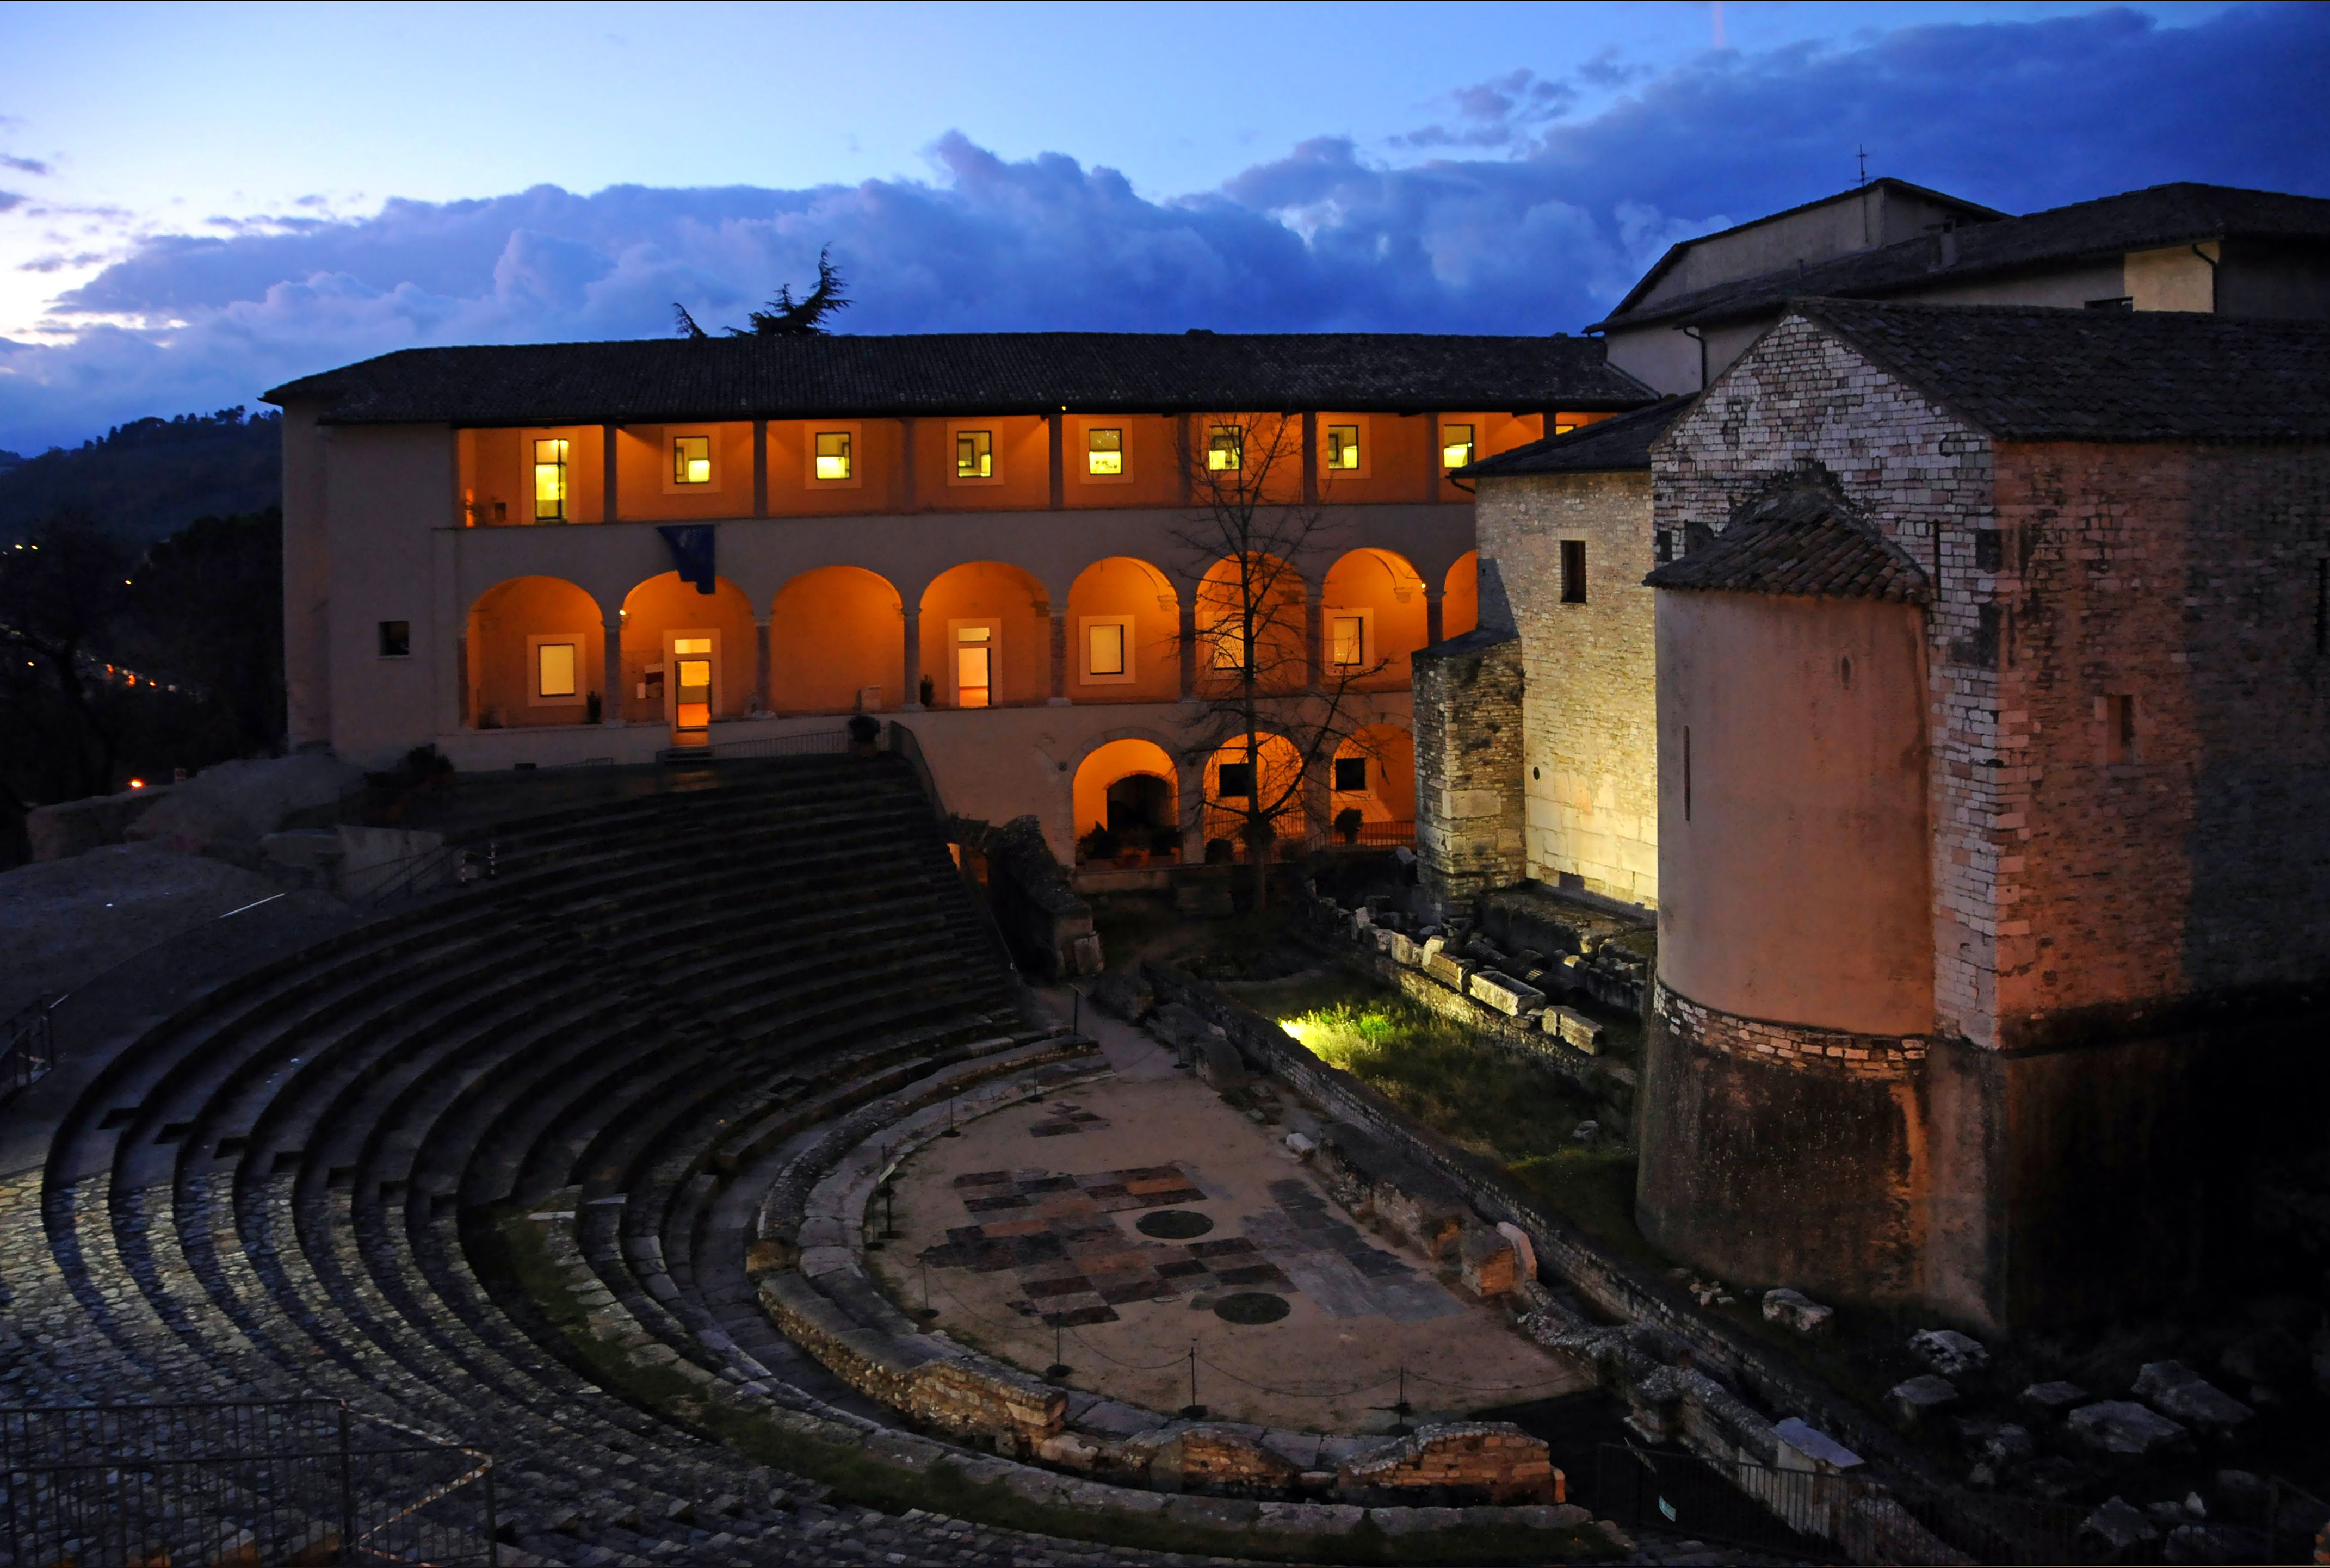 The Roman Theatre in Spoleto